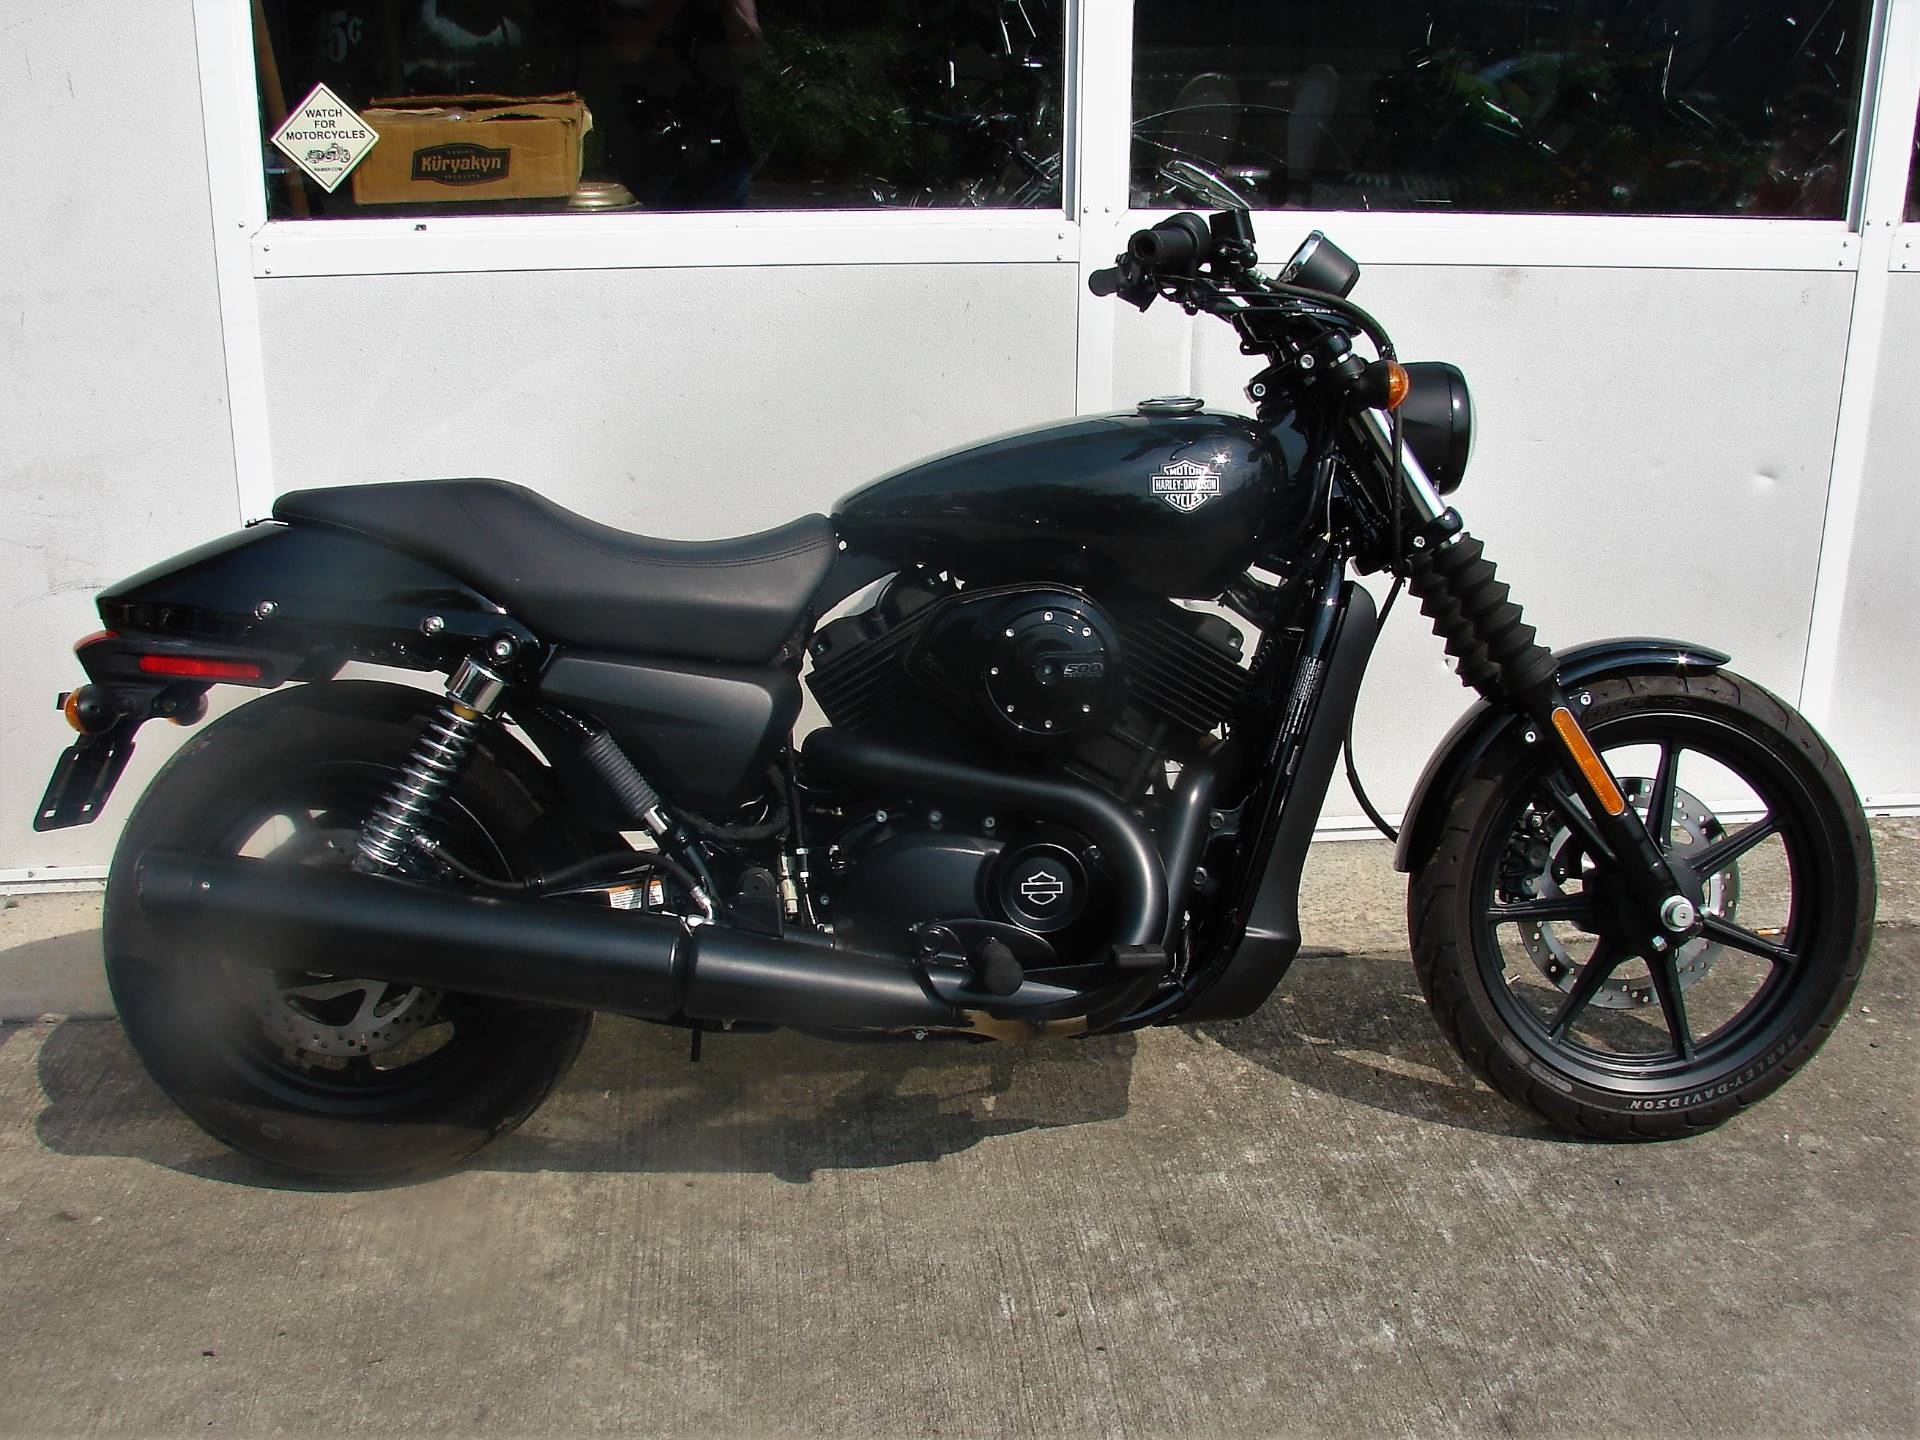 2015 Harley-Davidson XG 500  (Vivid Black) - LIKE NEW! in Williamstown, New Jersey